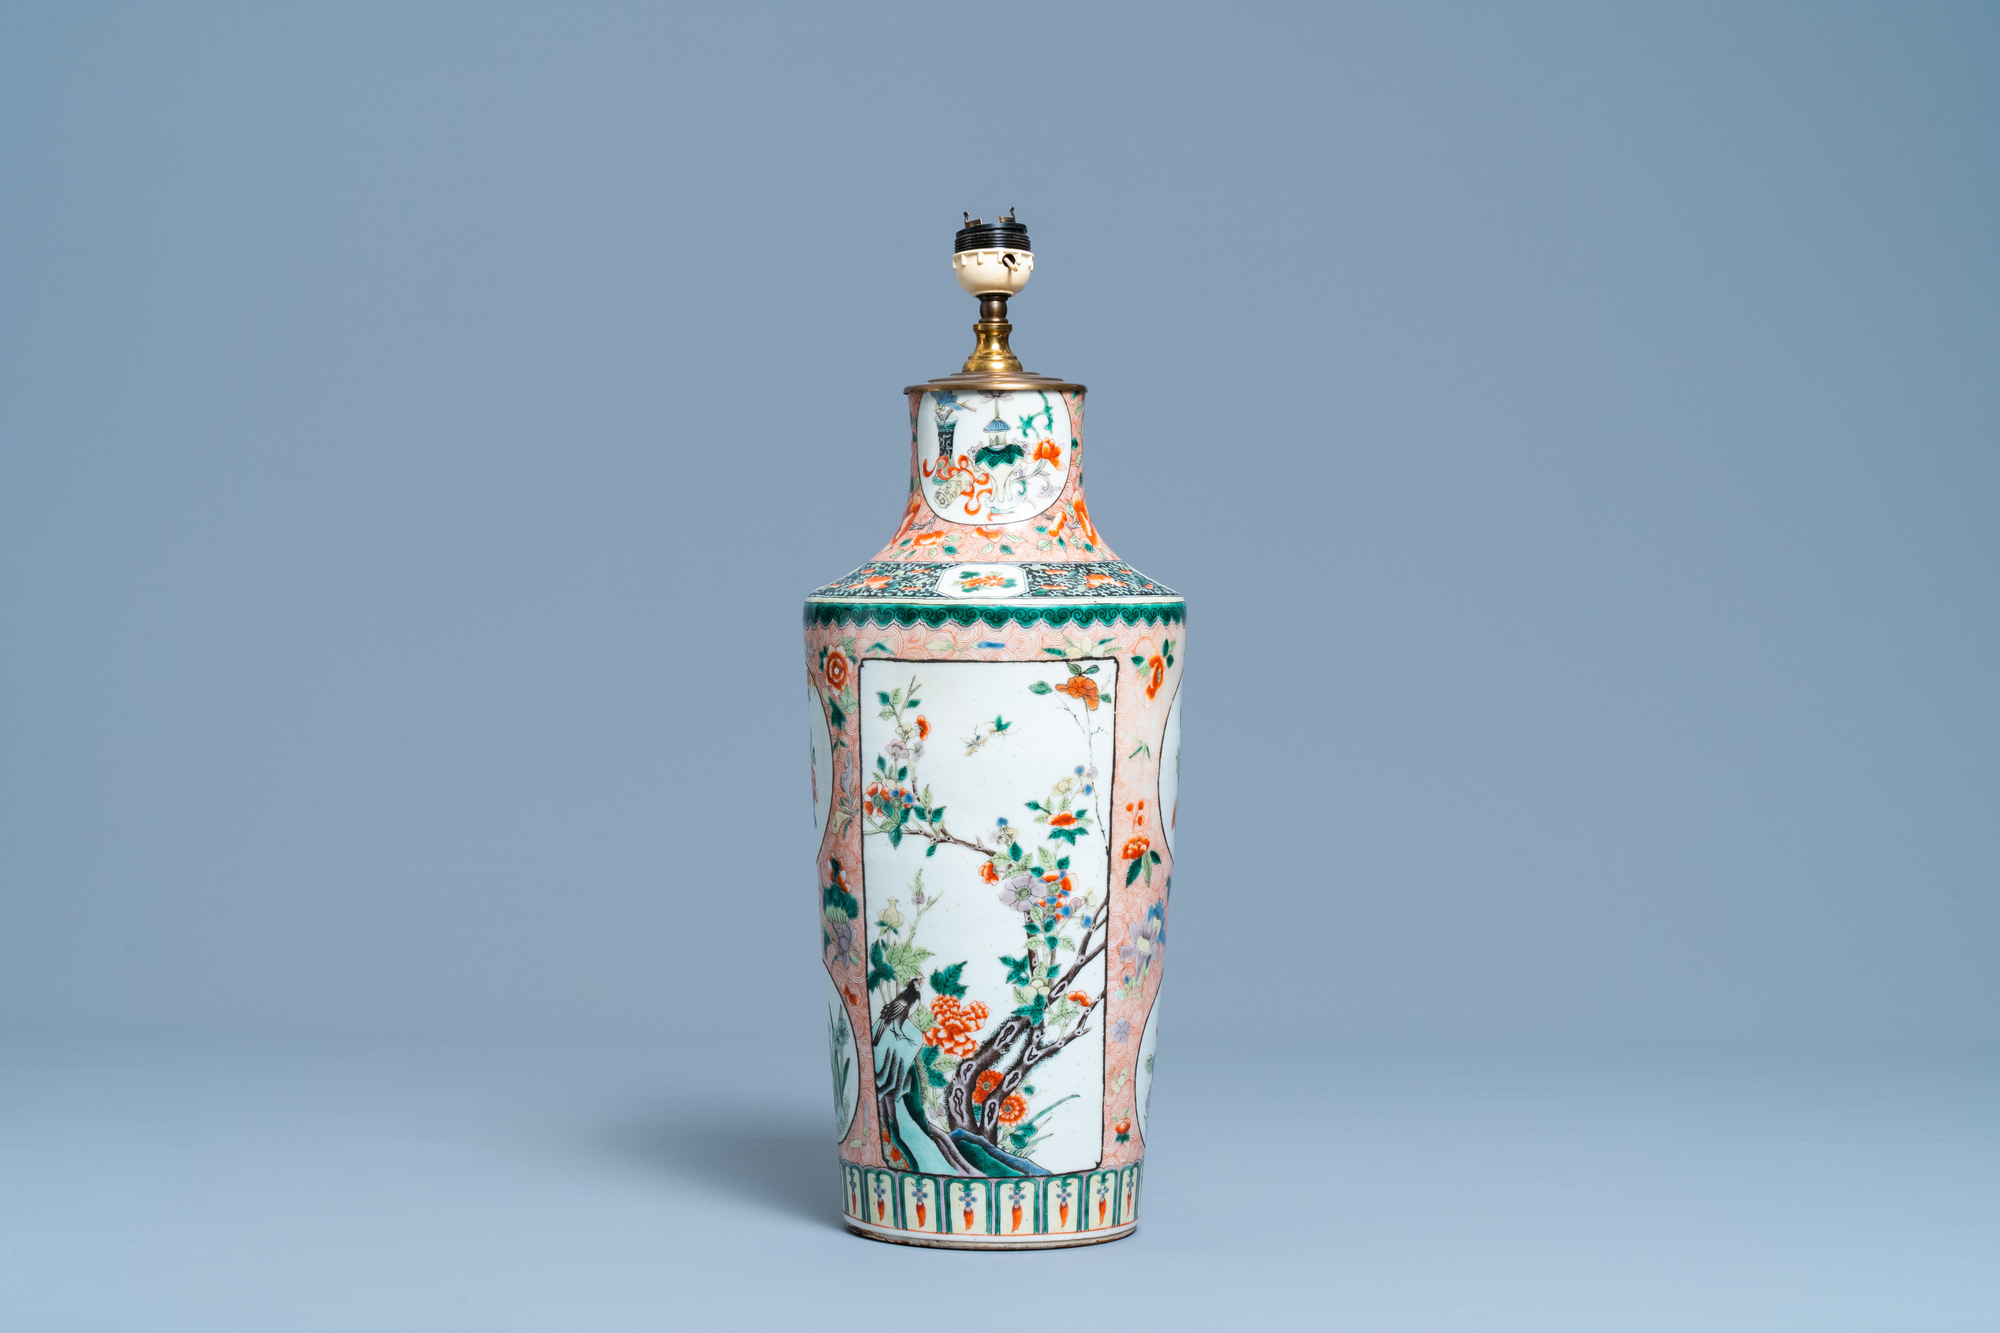 A Chinese lamp-mounted famille verte vase, 19th C. - Image 3 of 4